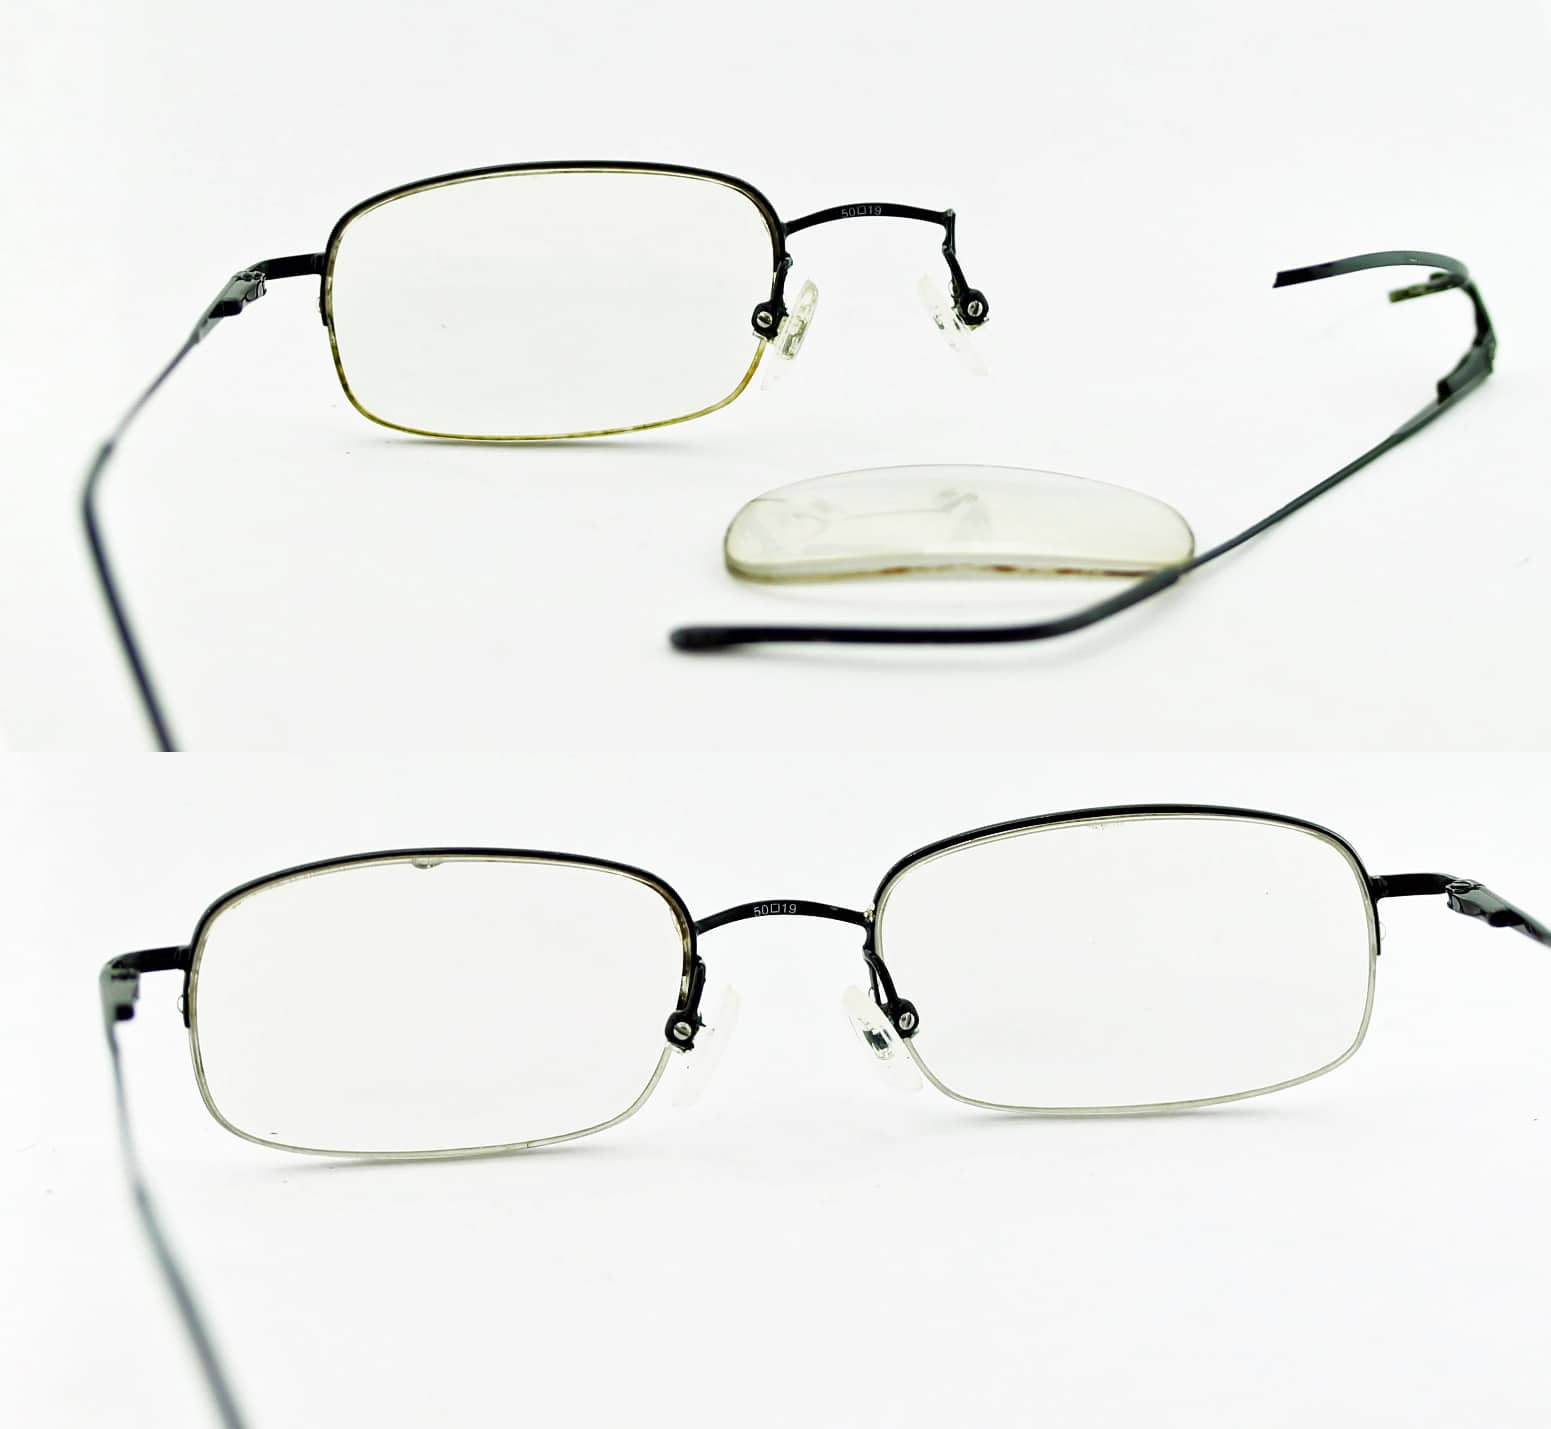 fd8e9ddc01 The standard charge for Lens frame welds is  39.95 (this is the amount  you ll be billed in this shopping cart). If we receive your eyeglasses and  see that ...